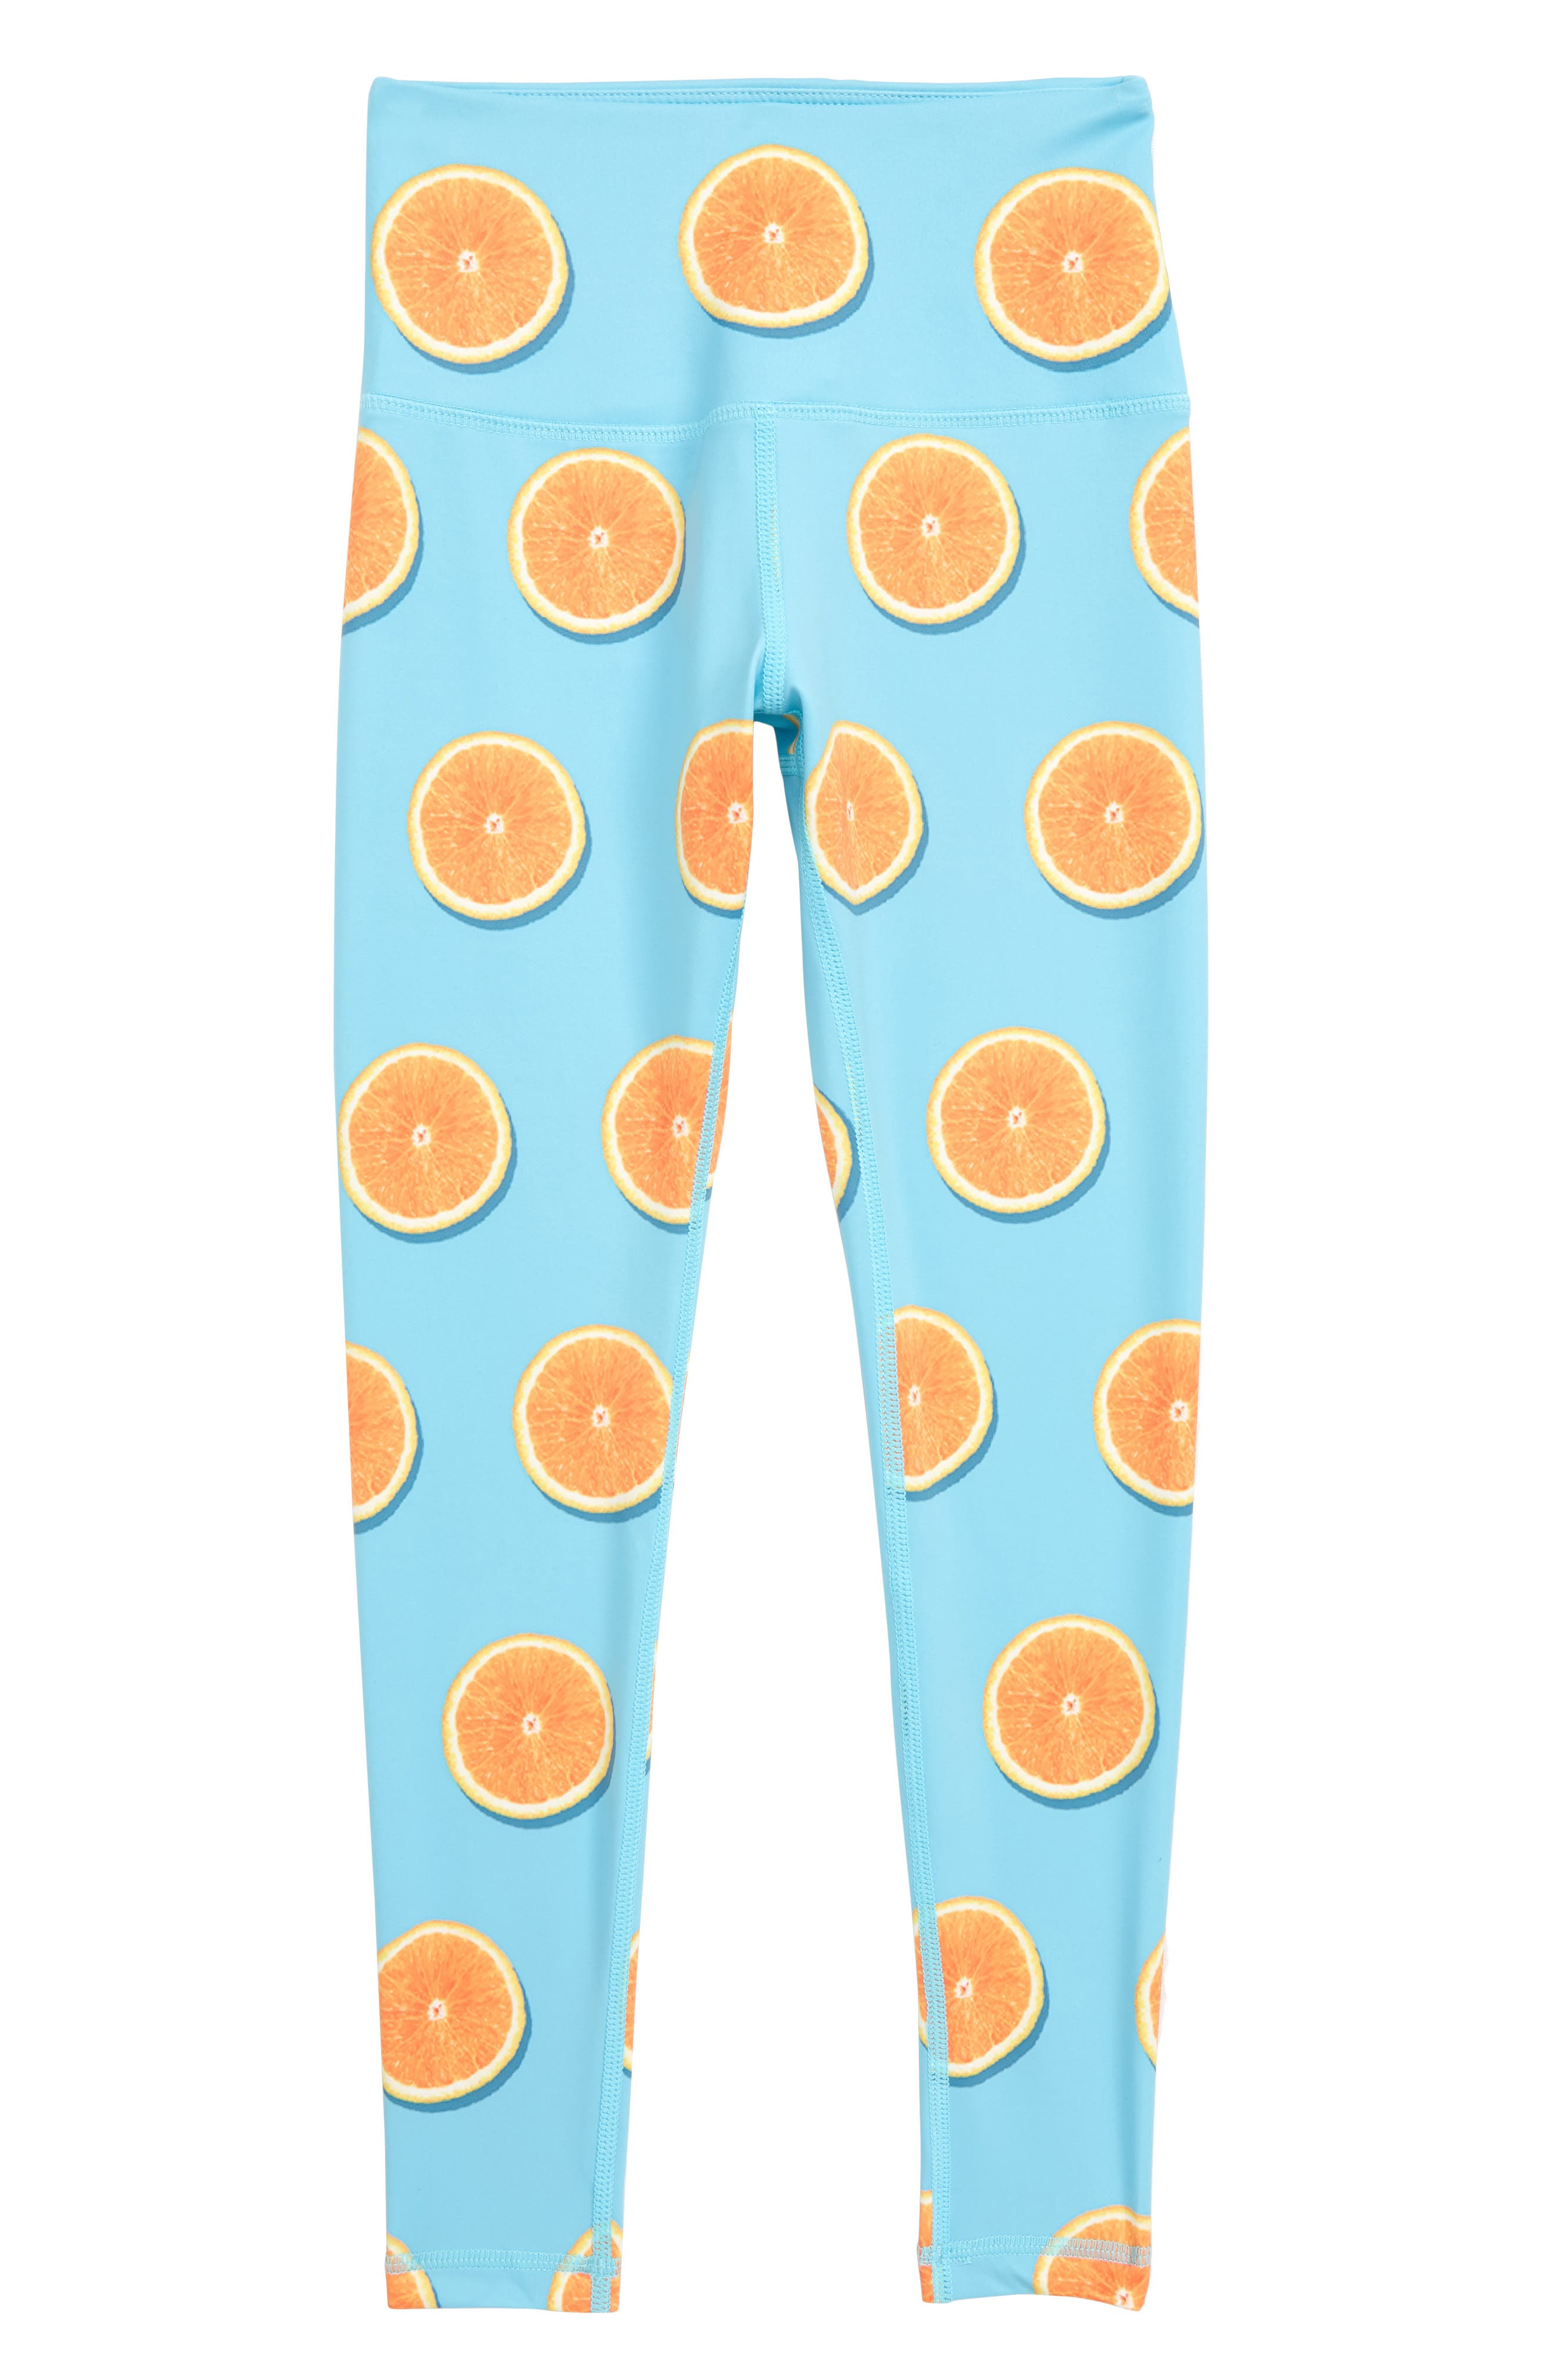 Oranges Of My Eyes Yoga Pants,                         Main,                         color, Blue